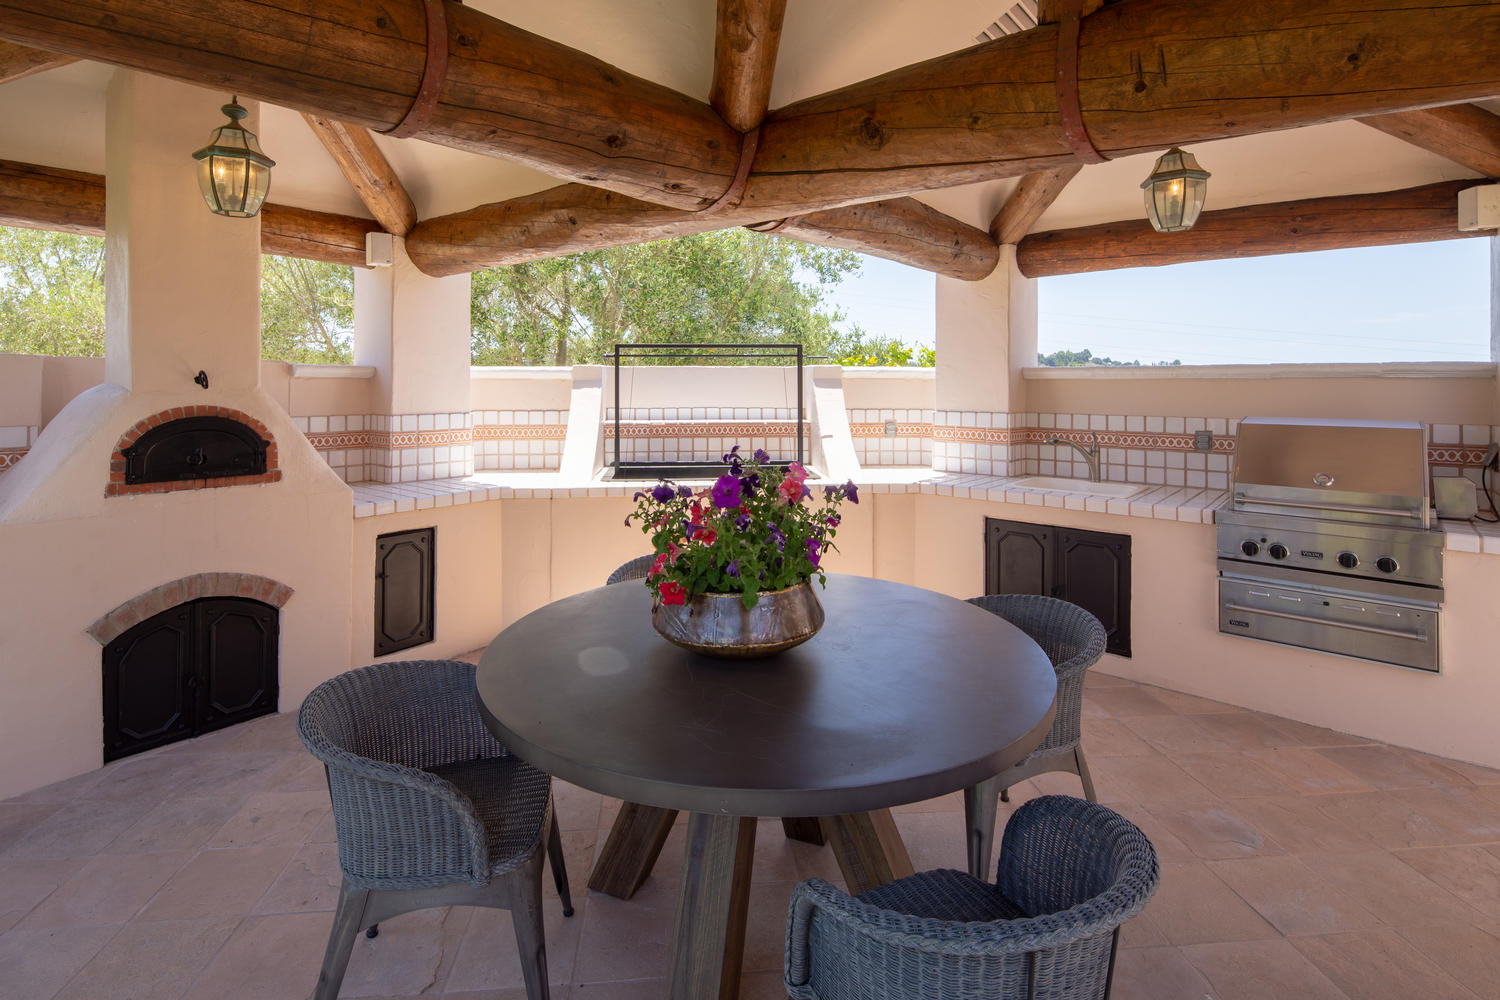 2520 Nightshade Place-large-046-38-Outdoor Dining  BBQ Area-1500x1000-72dpi.jpg